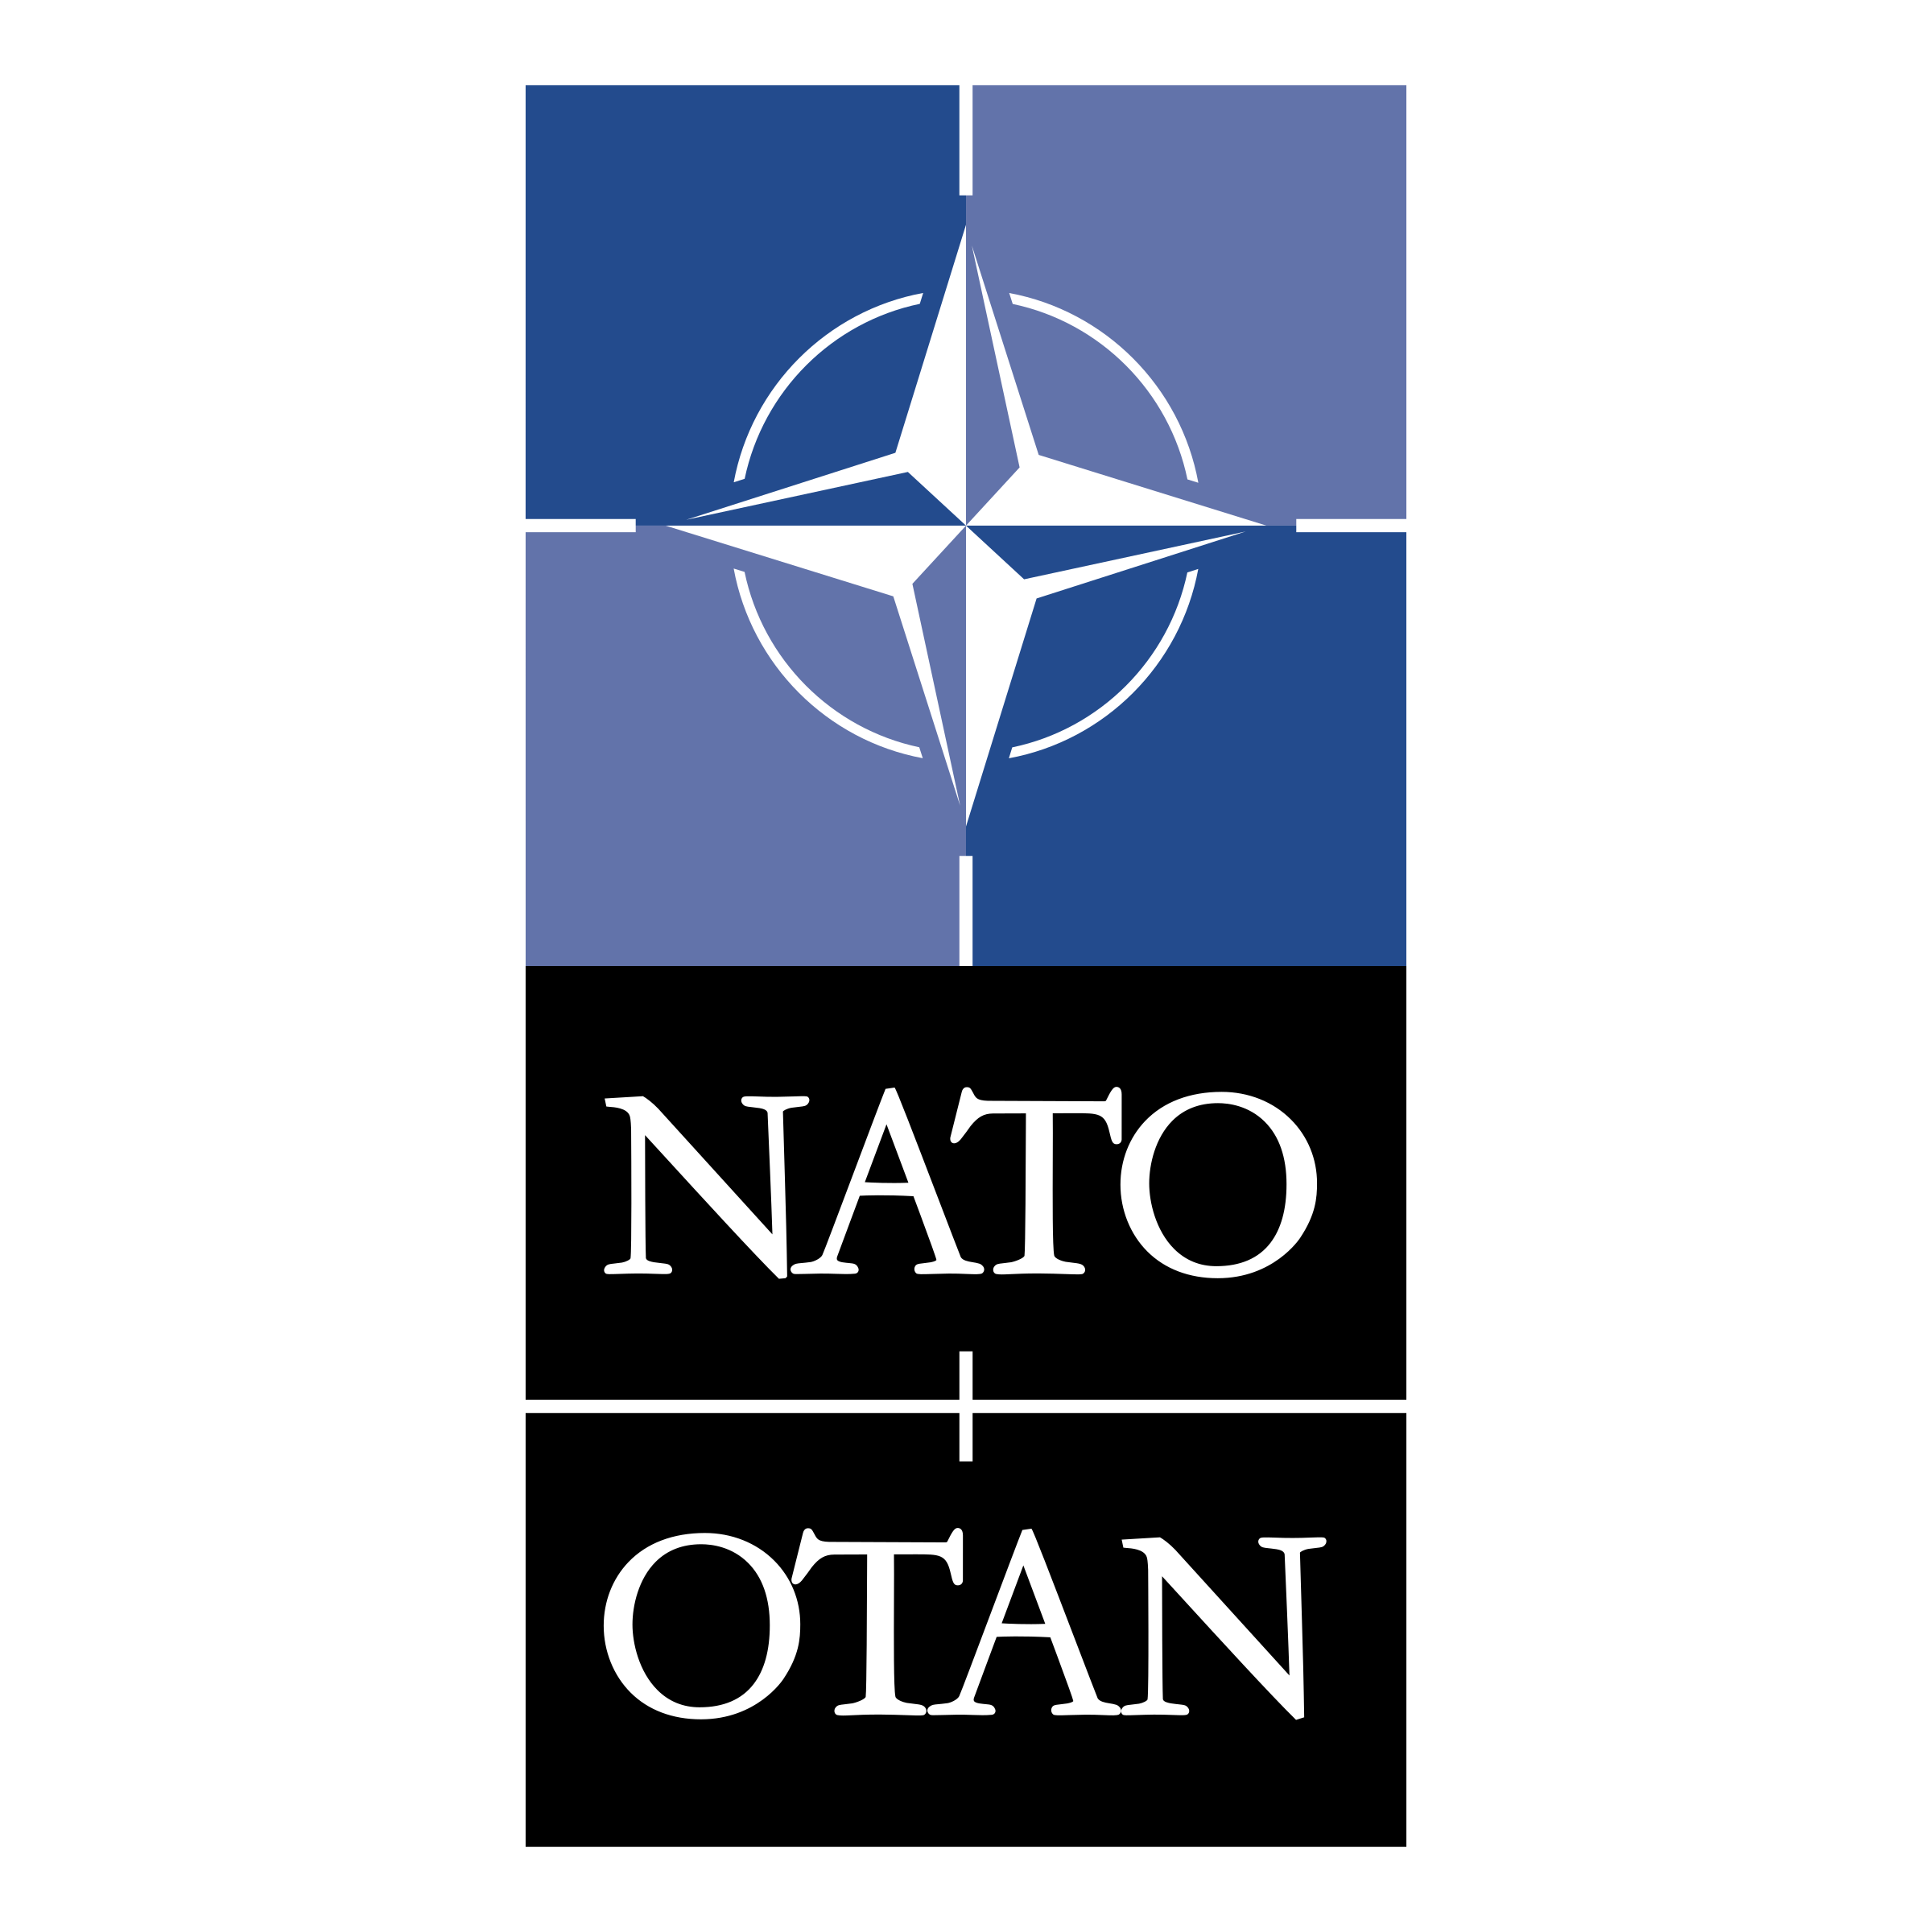 NATO Logo PNG Transparent & SVG Vector.